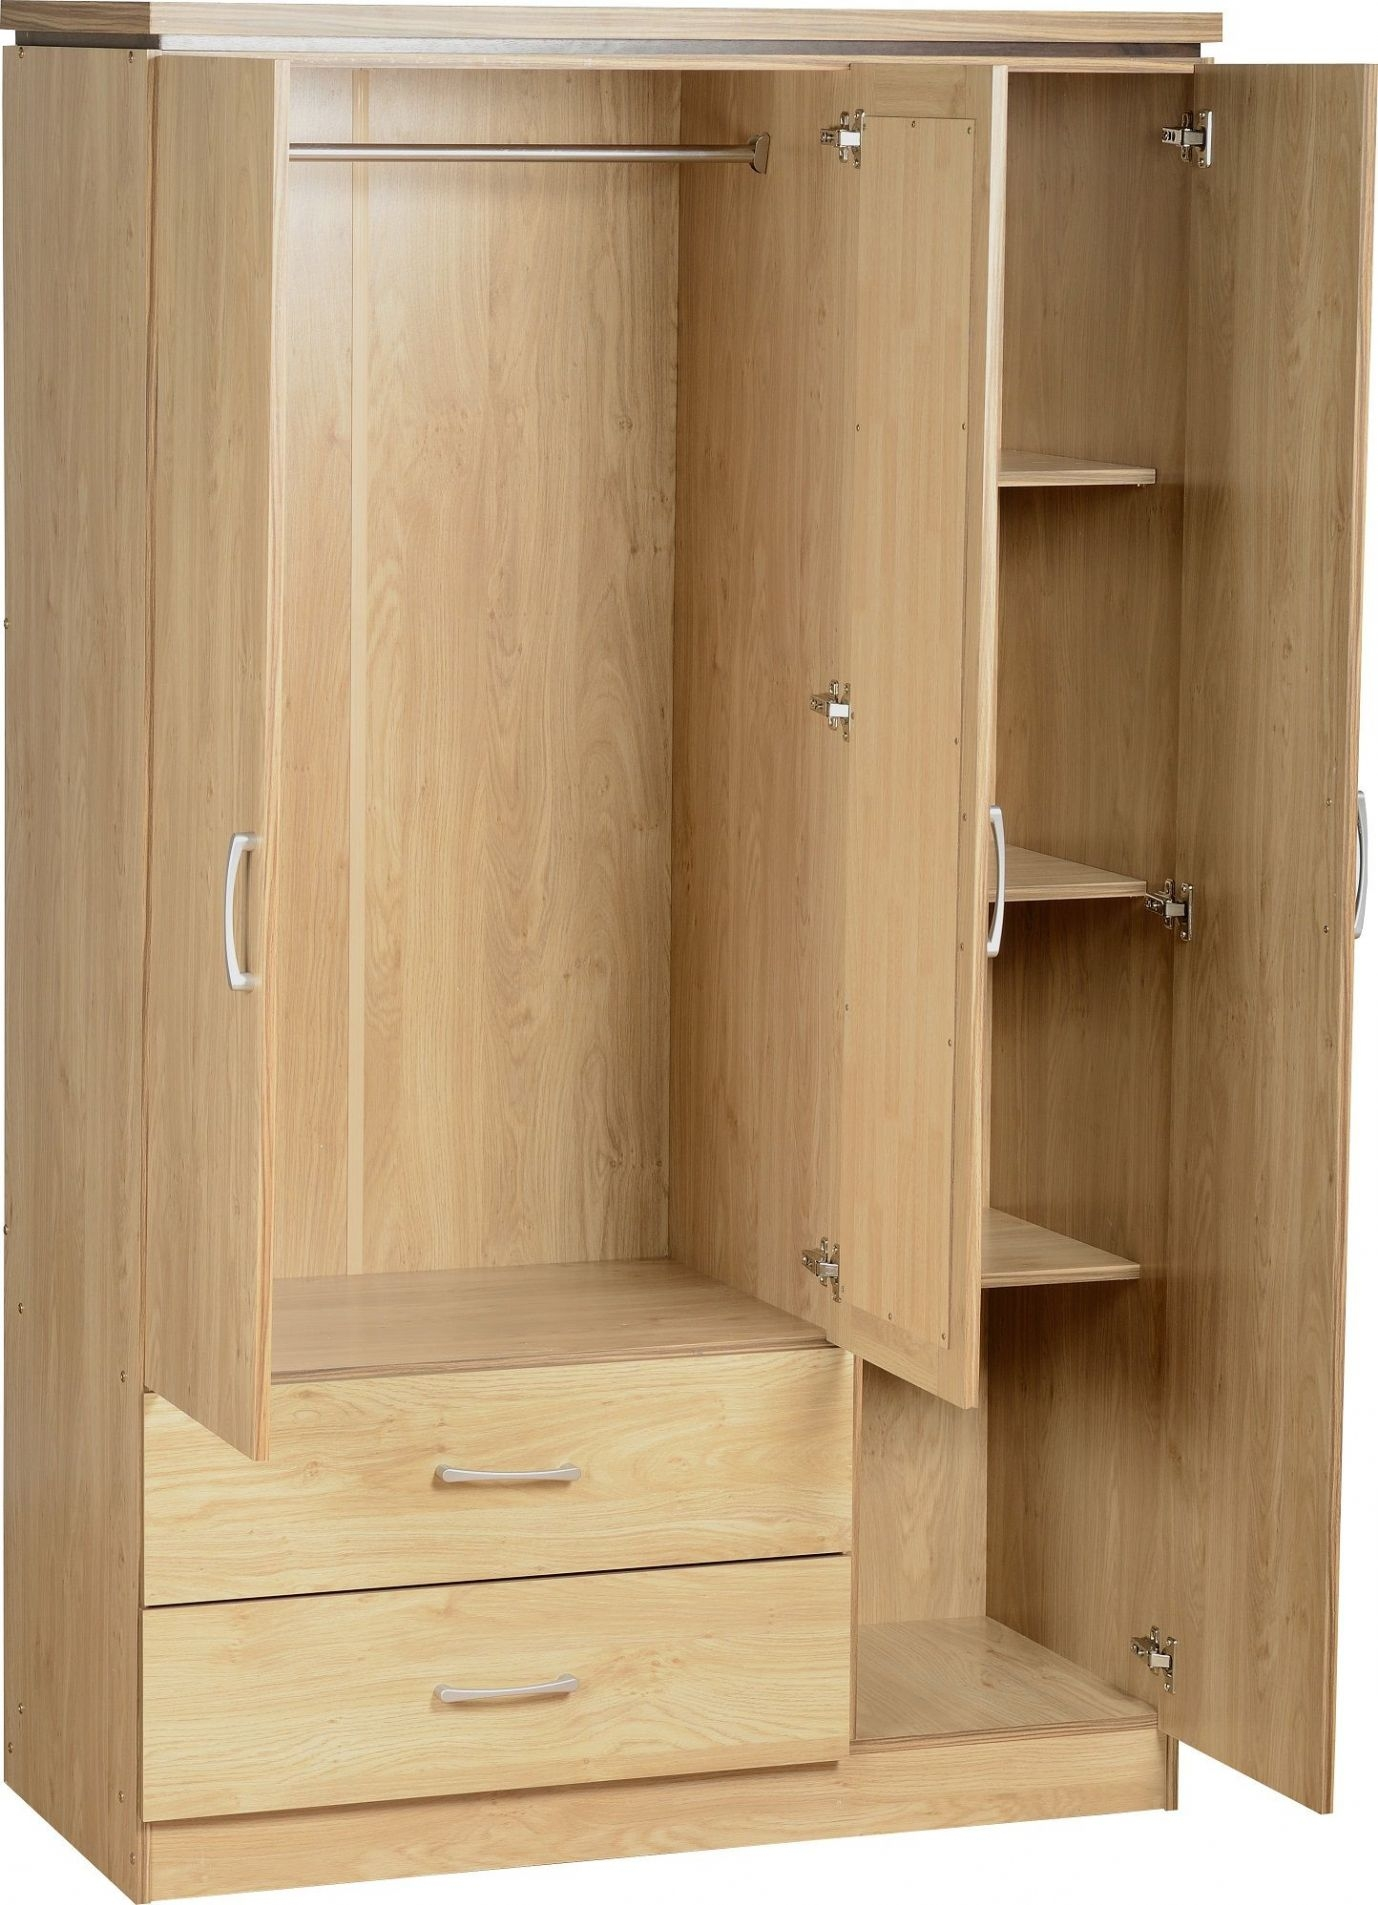 Popular Photo of Wardrobes With Shelves